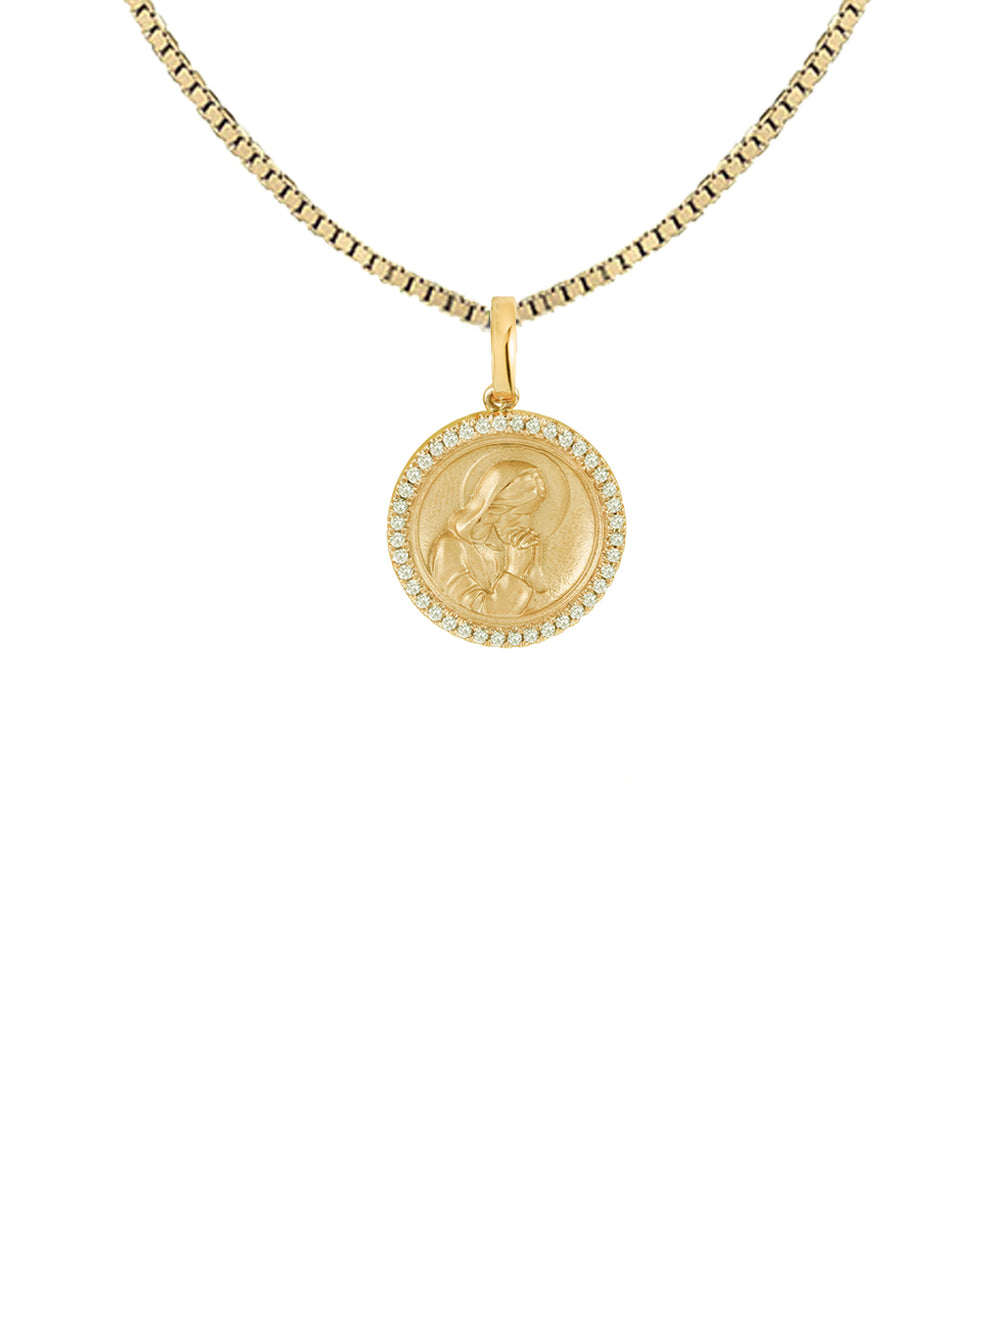 PRAYING JESUS (CHAPTER II BY GREG YÜNA X THE M JEWELERS)